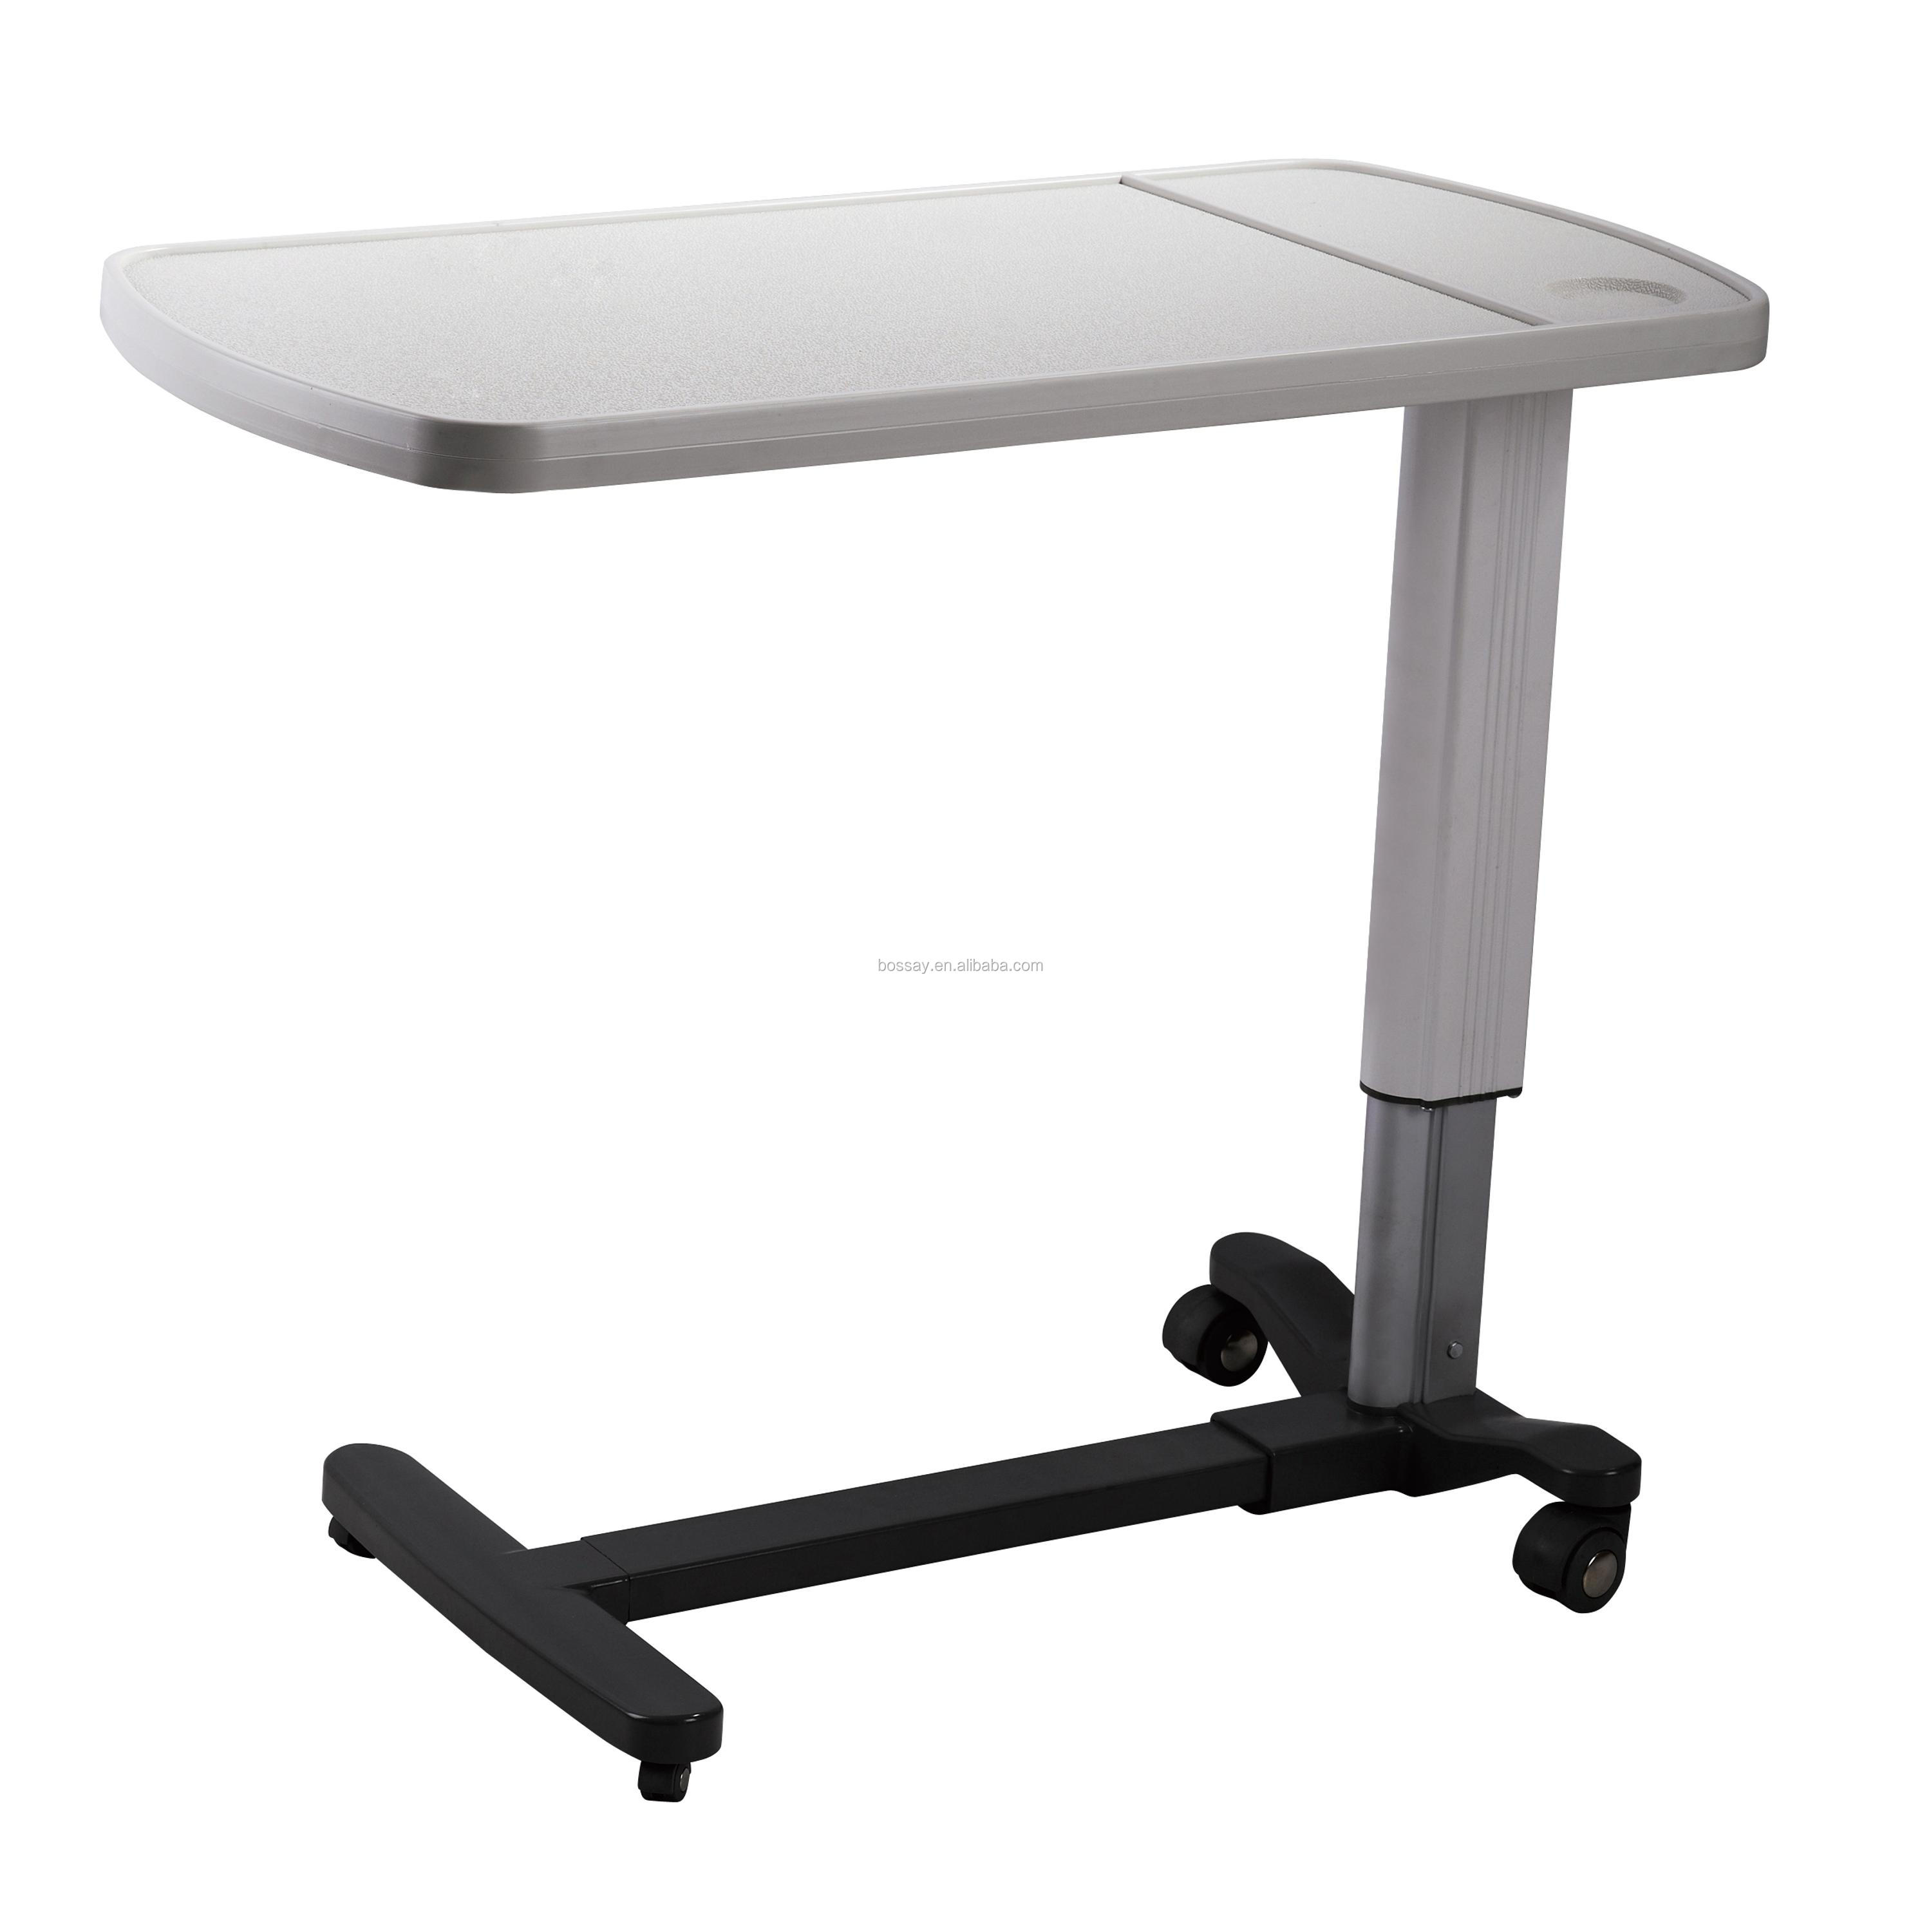 Super Ce Fda Certificates High Quality Medical Appliance Luxurious Hydraulic Hospital Bed Dining Table Buy Hospital Bed Dining Table Over Bed Theyellowbook Wood Chair Design Ideas Theyellowbookinfo